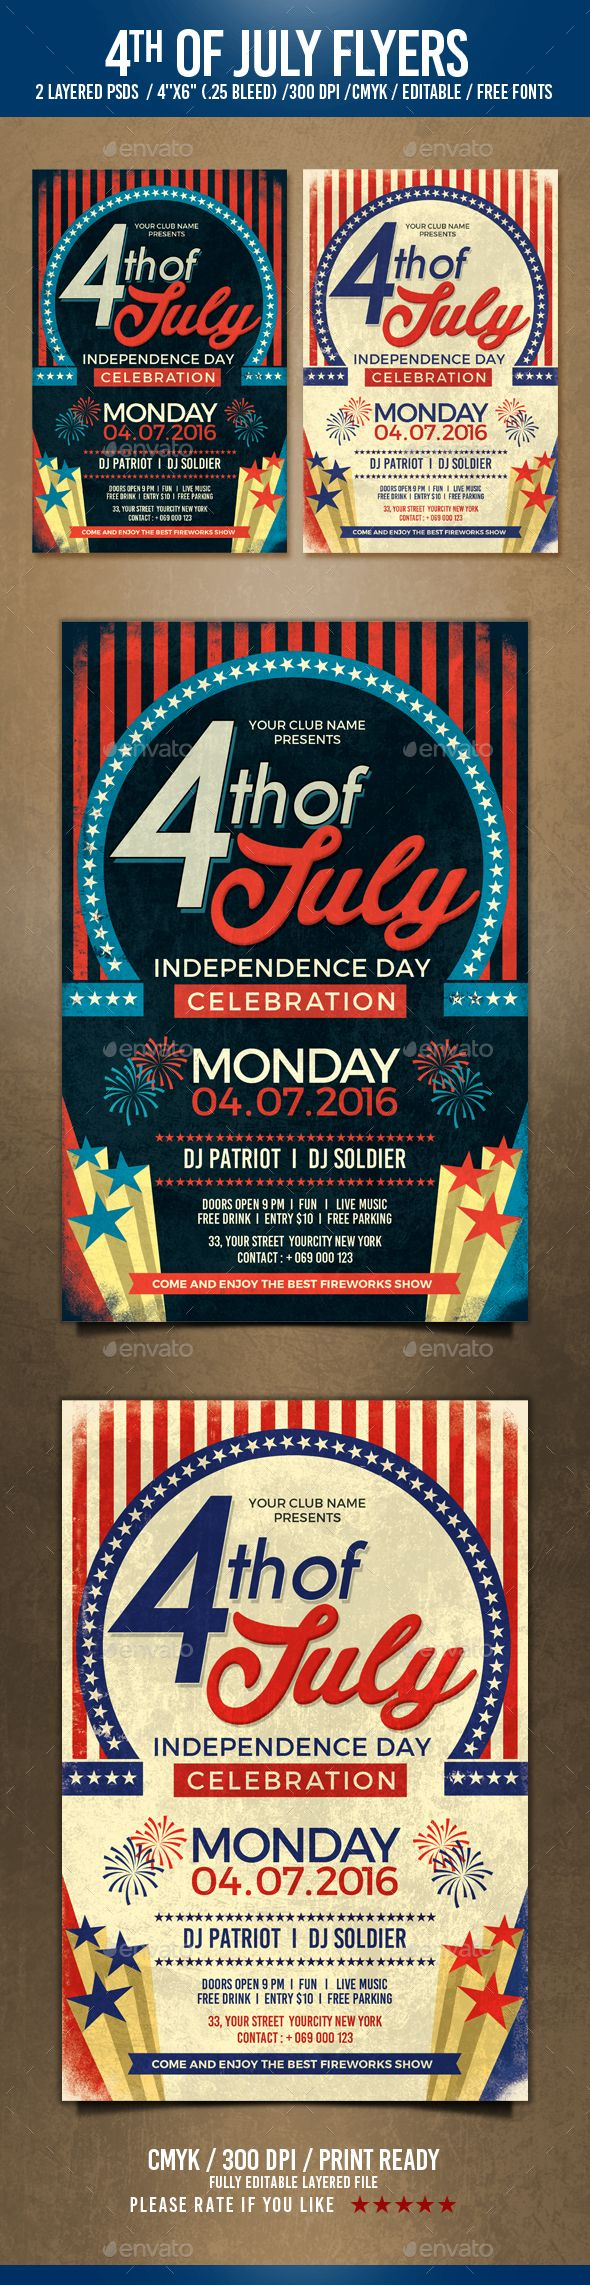 4th of july events in florida 2013